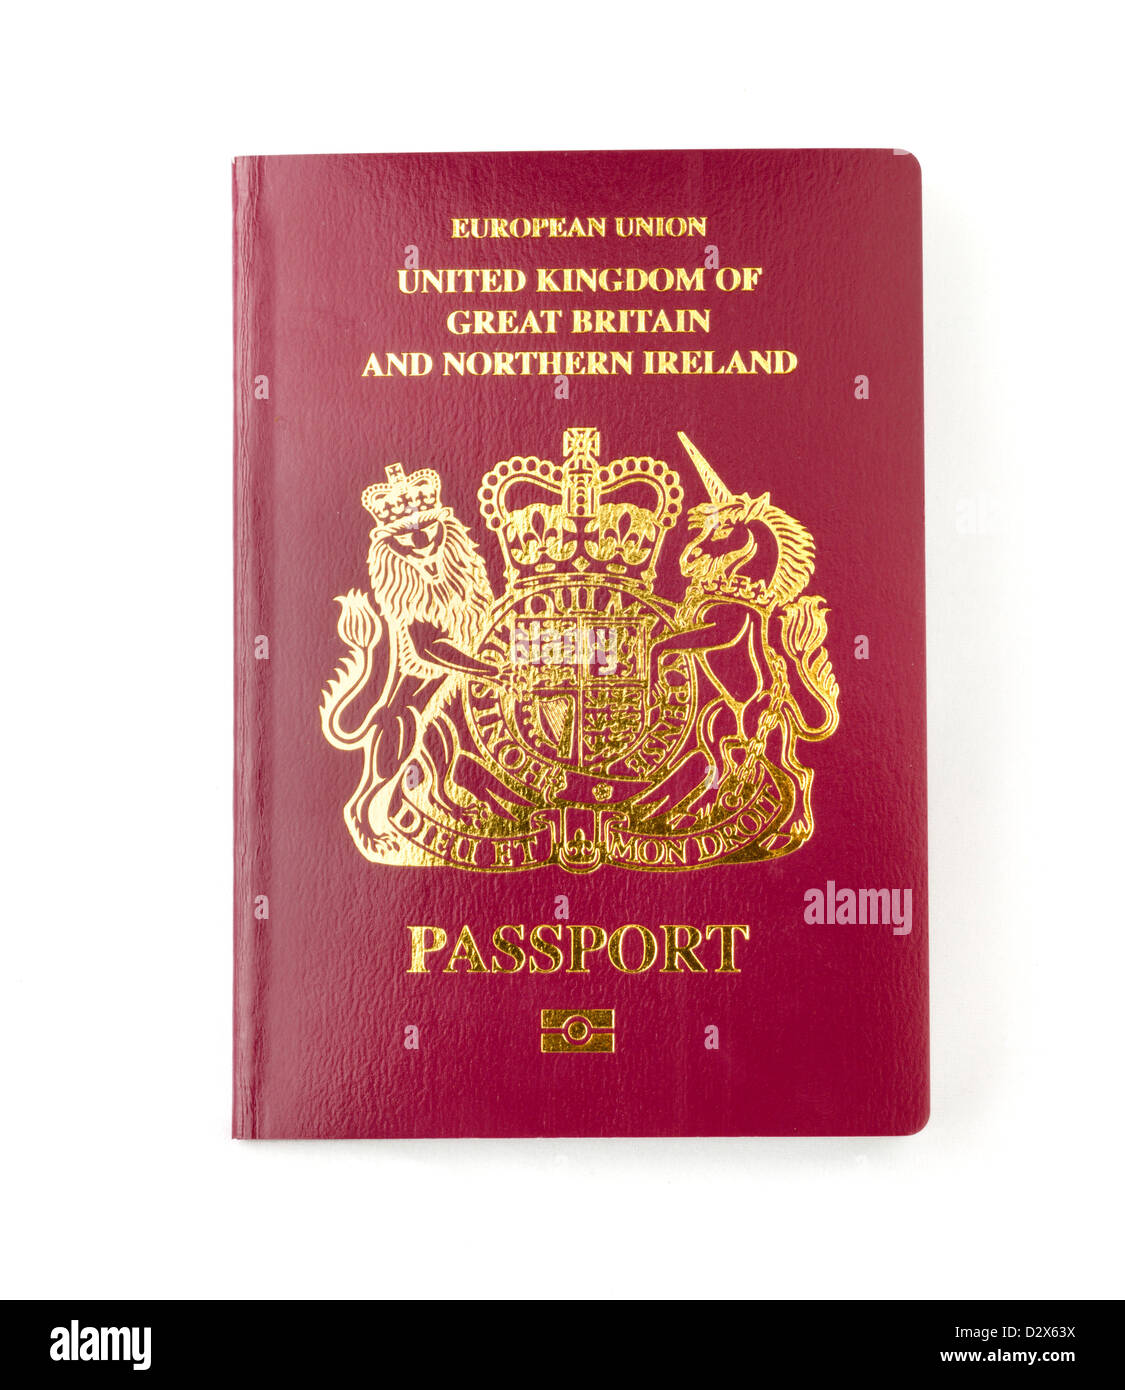 A 2013 biometric European Union passport for the United Kingdom - Stock Image